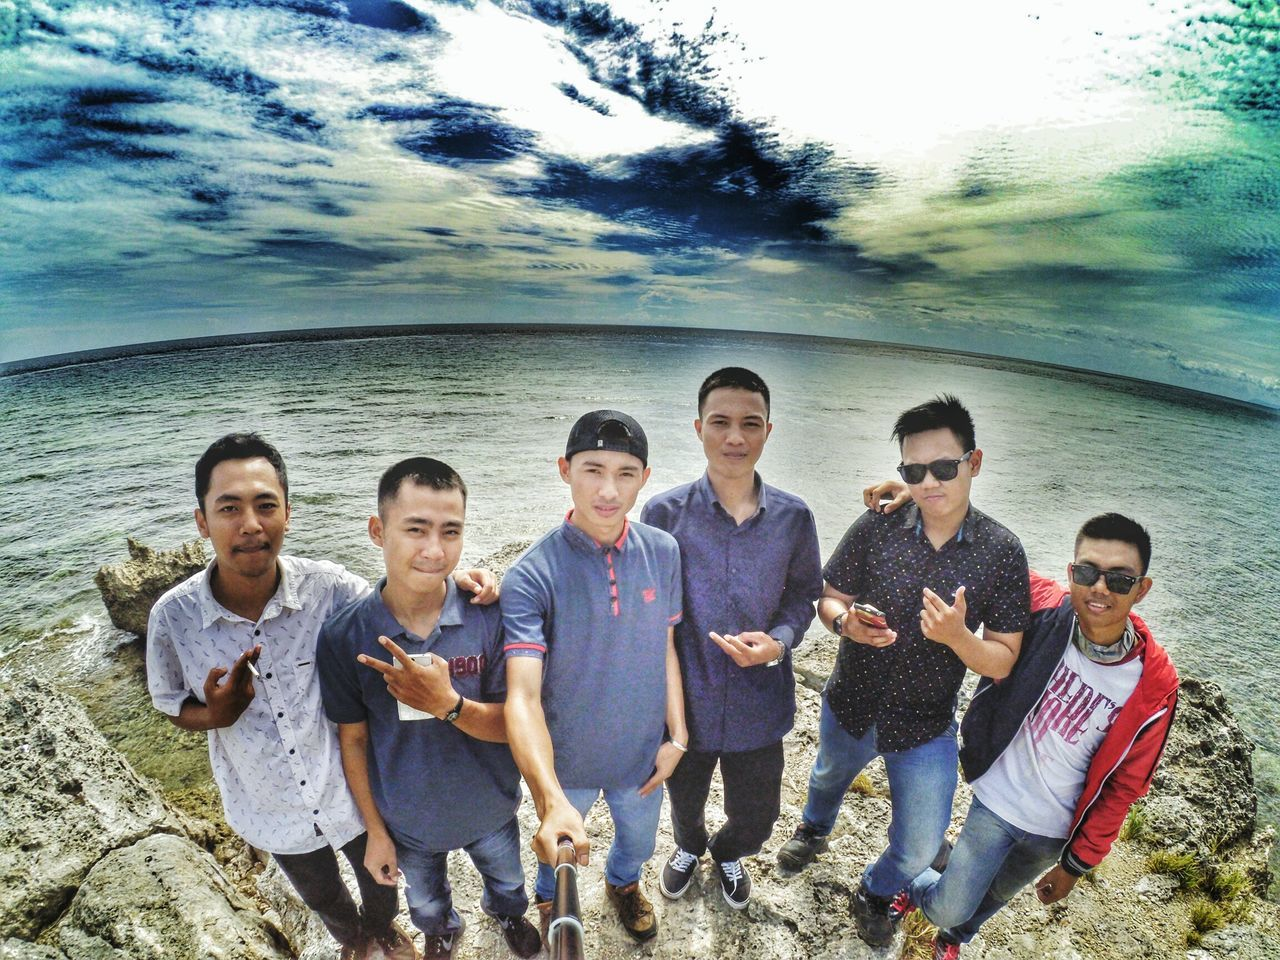 Young Men Young Adult Teenager Casual Clothing Looking At Camera Vacations Togetherness Outdoors Medium Group Of People Portrait Young Women People Friendship Leisure Activity Day Adult Men Playing Musical Instrument Beach Likeforfollows Likesforlikes Torajanese Latepost TanaToraja